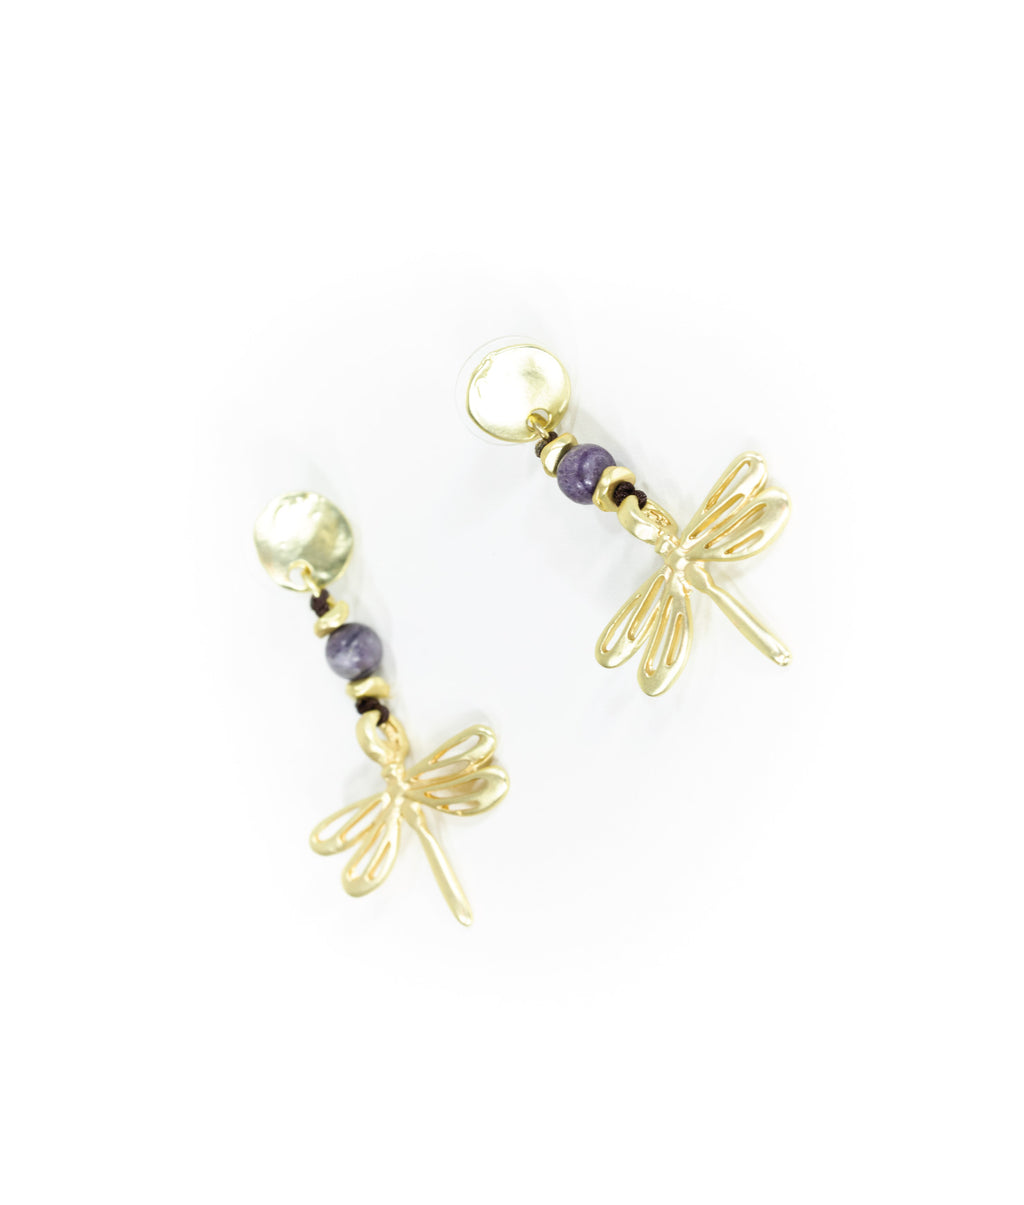 EARRINGS - Dragonfly Gold